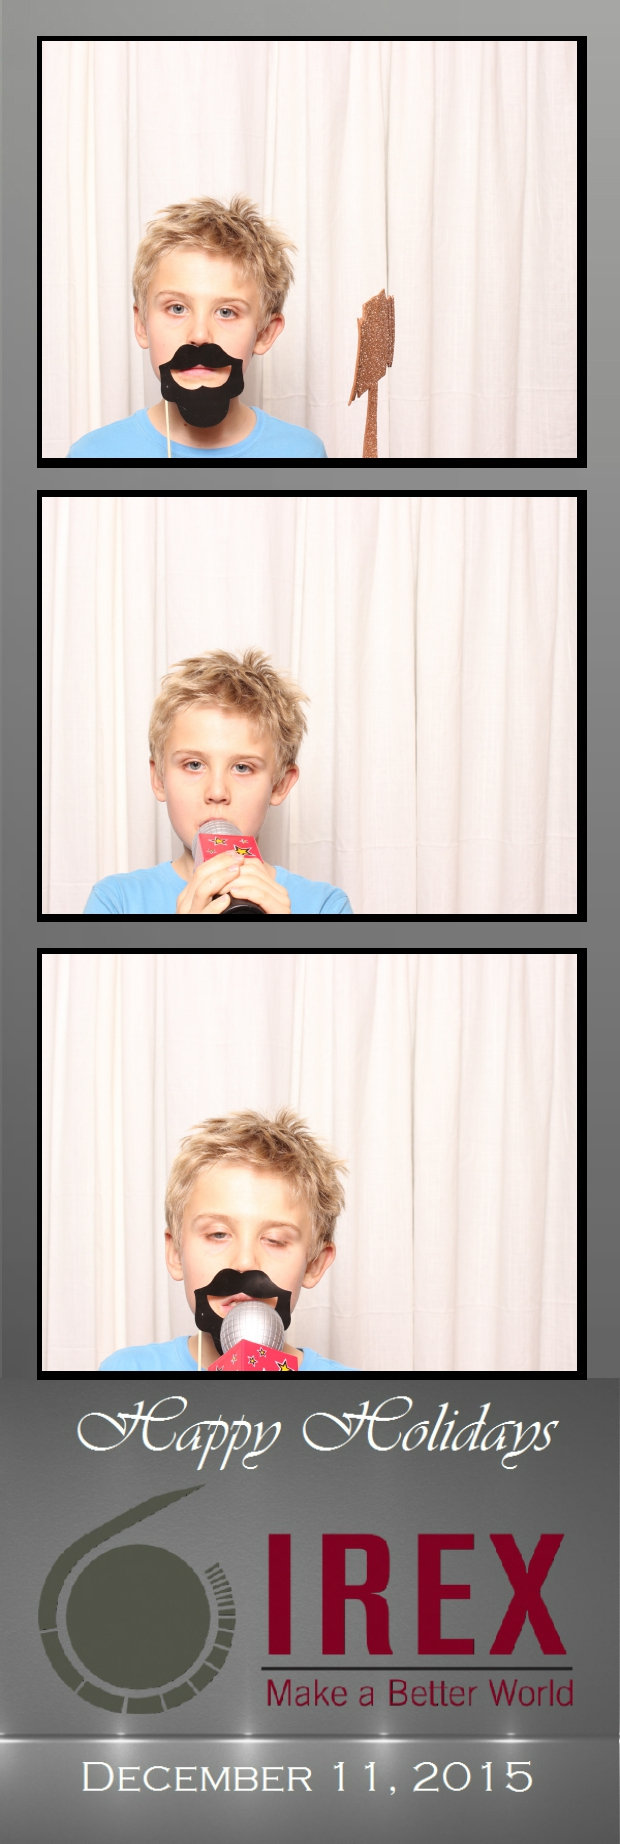 Guest House Events Photo Booth Strips IREX (85).jpg